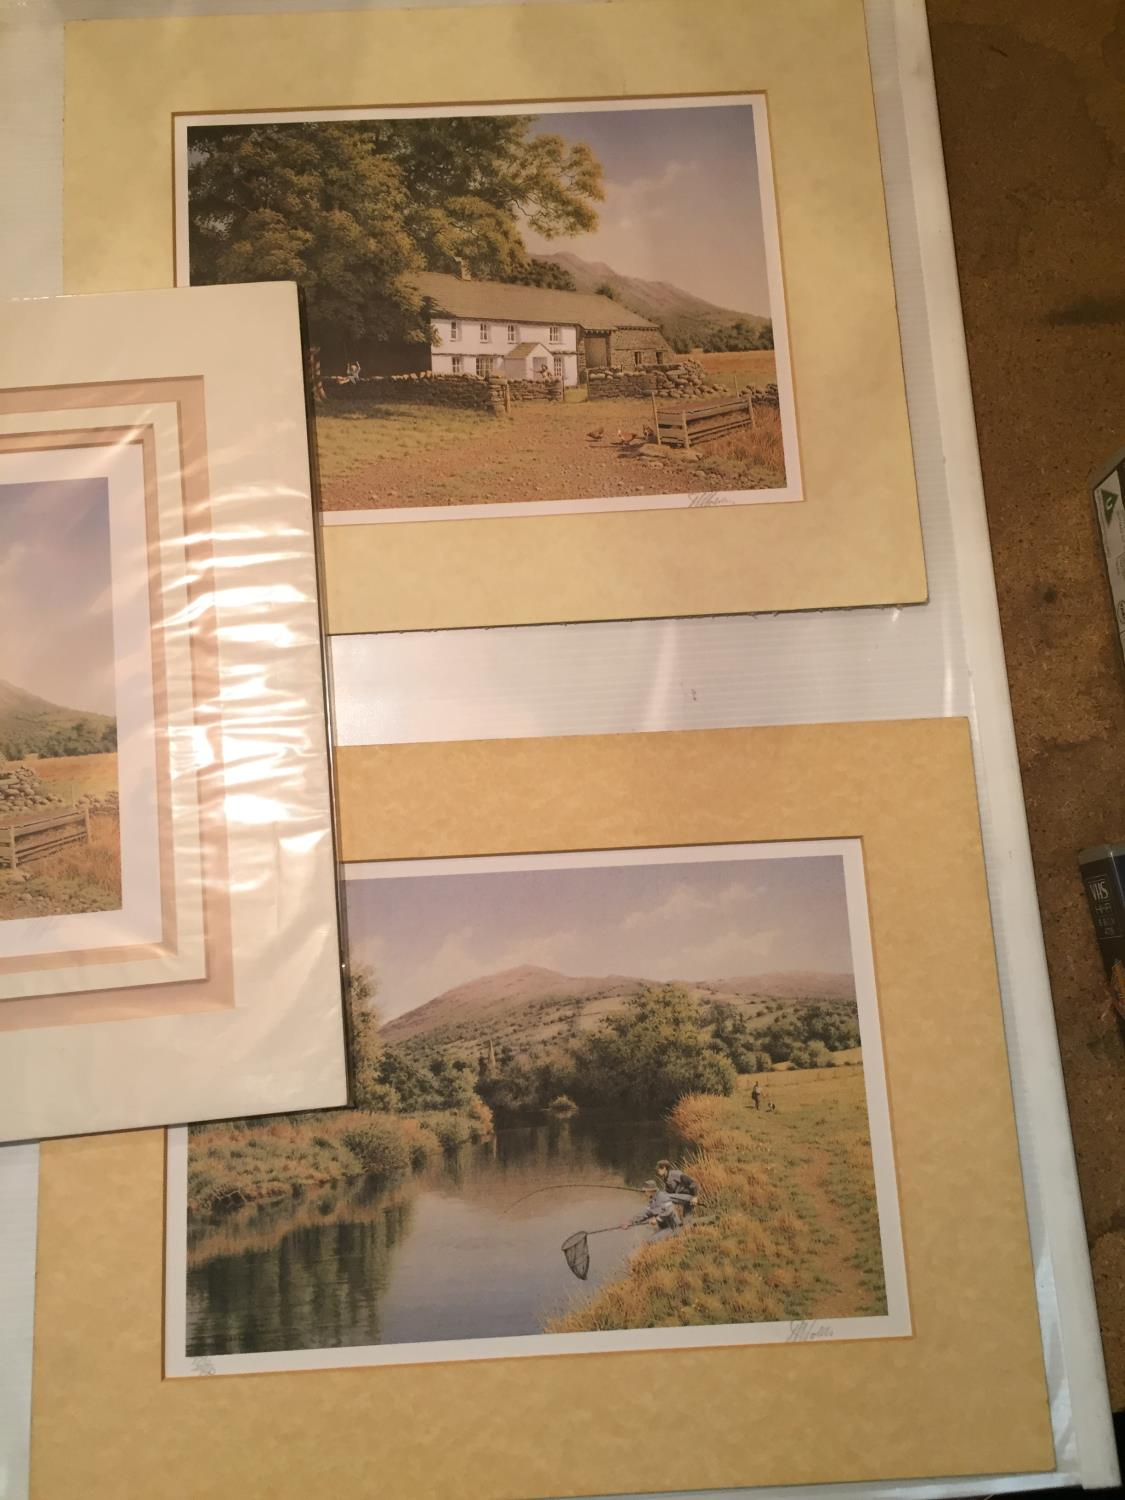 THREE MOUNTED SIGNED PRINTS OF FARM SCENES IN A HARDBACK PROTECTIVE FOLDER - Image 4 of 12